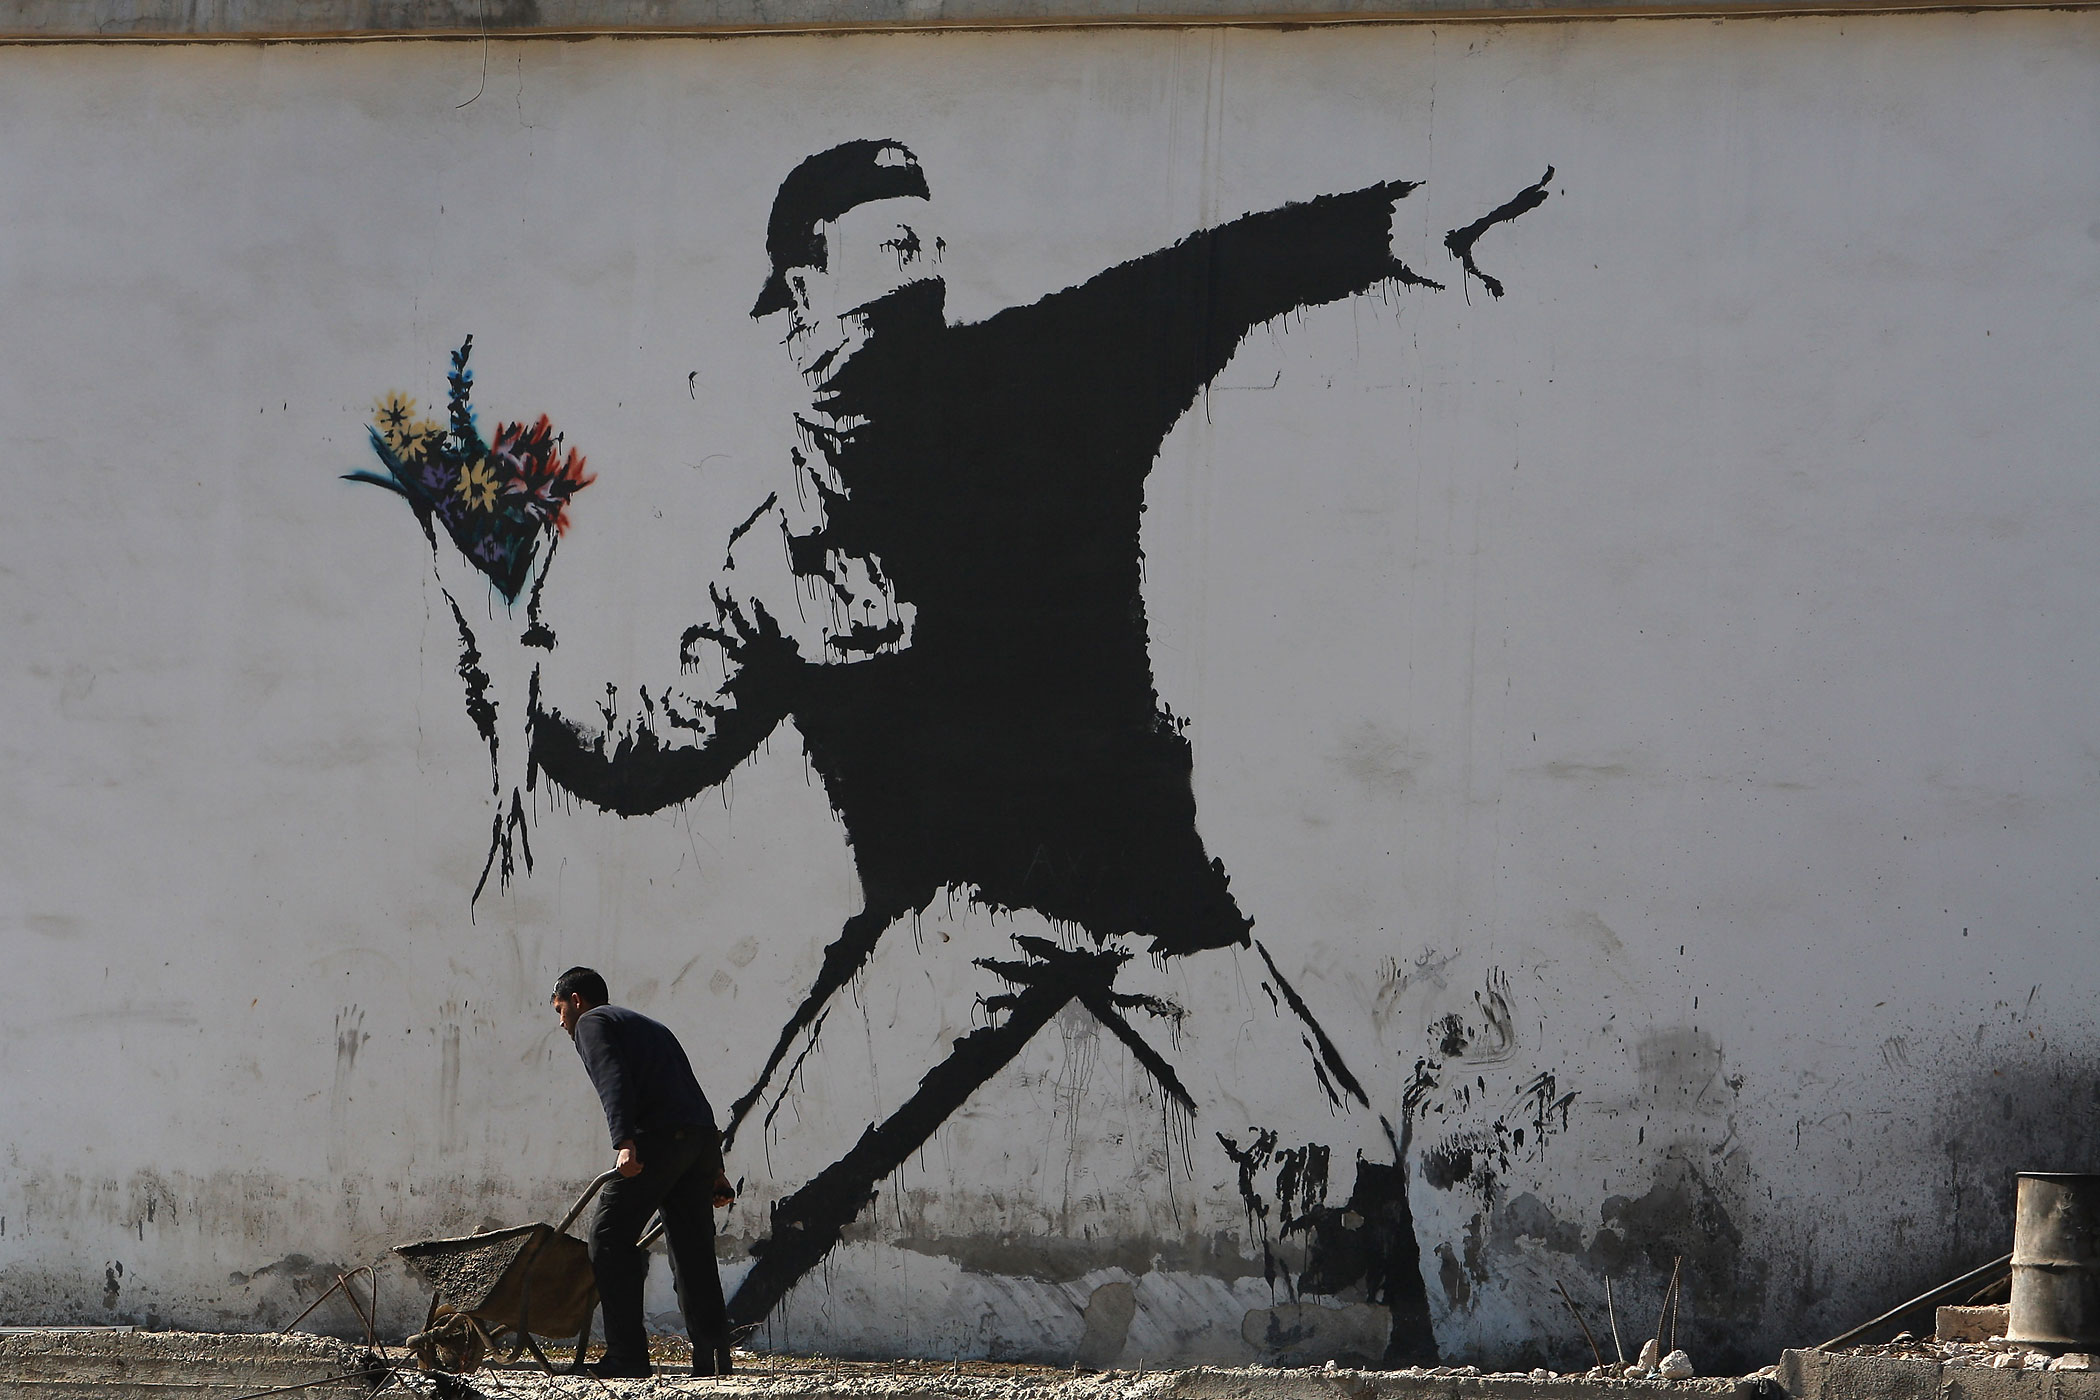 A Palestinian laborer works under a large wall painting by Banksy on December 5, 2007 in Bethlehem in the West Bank.